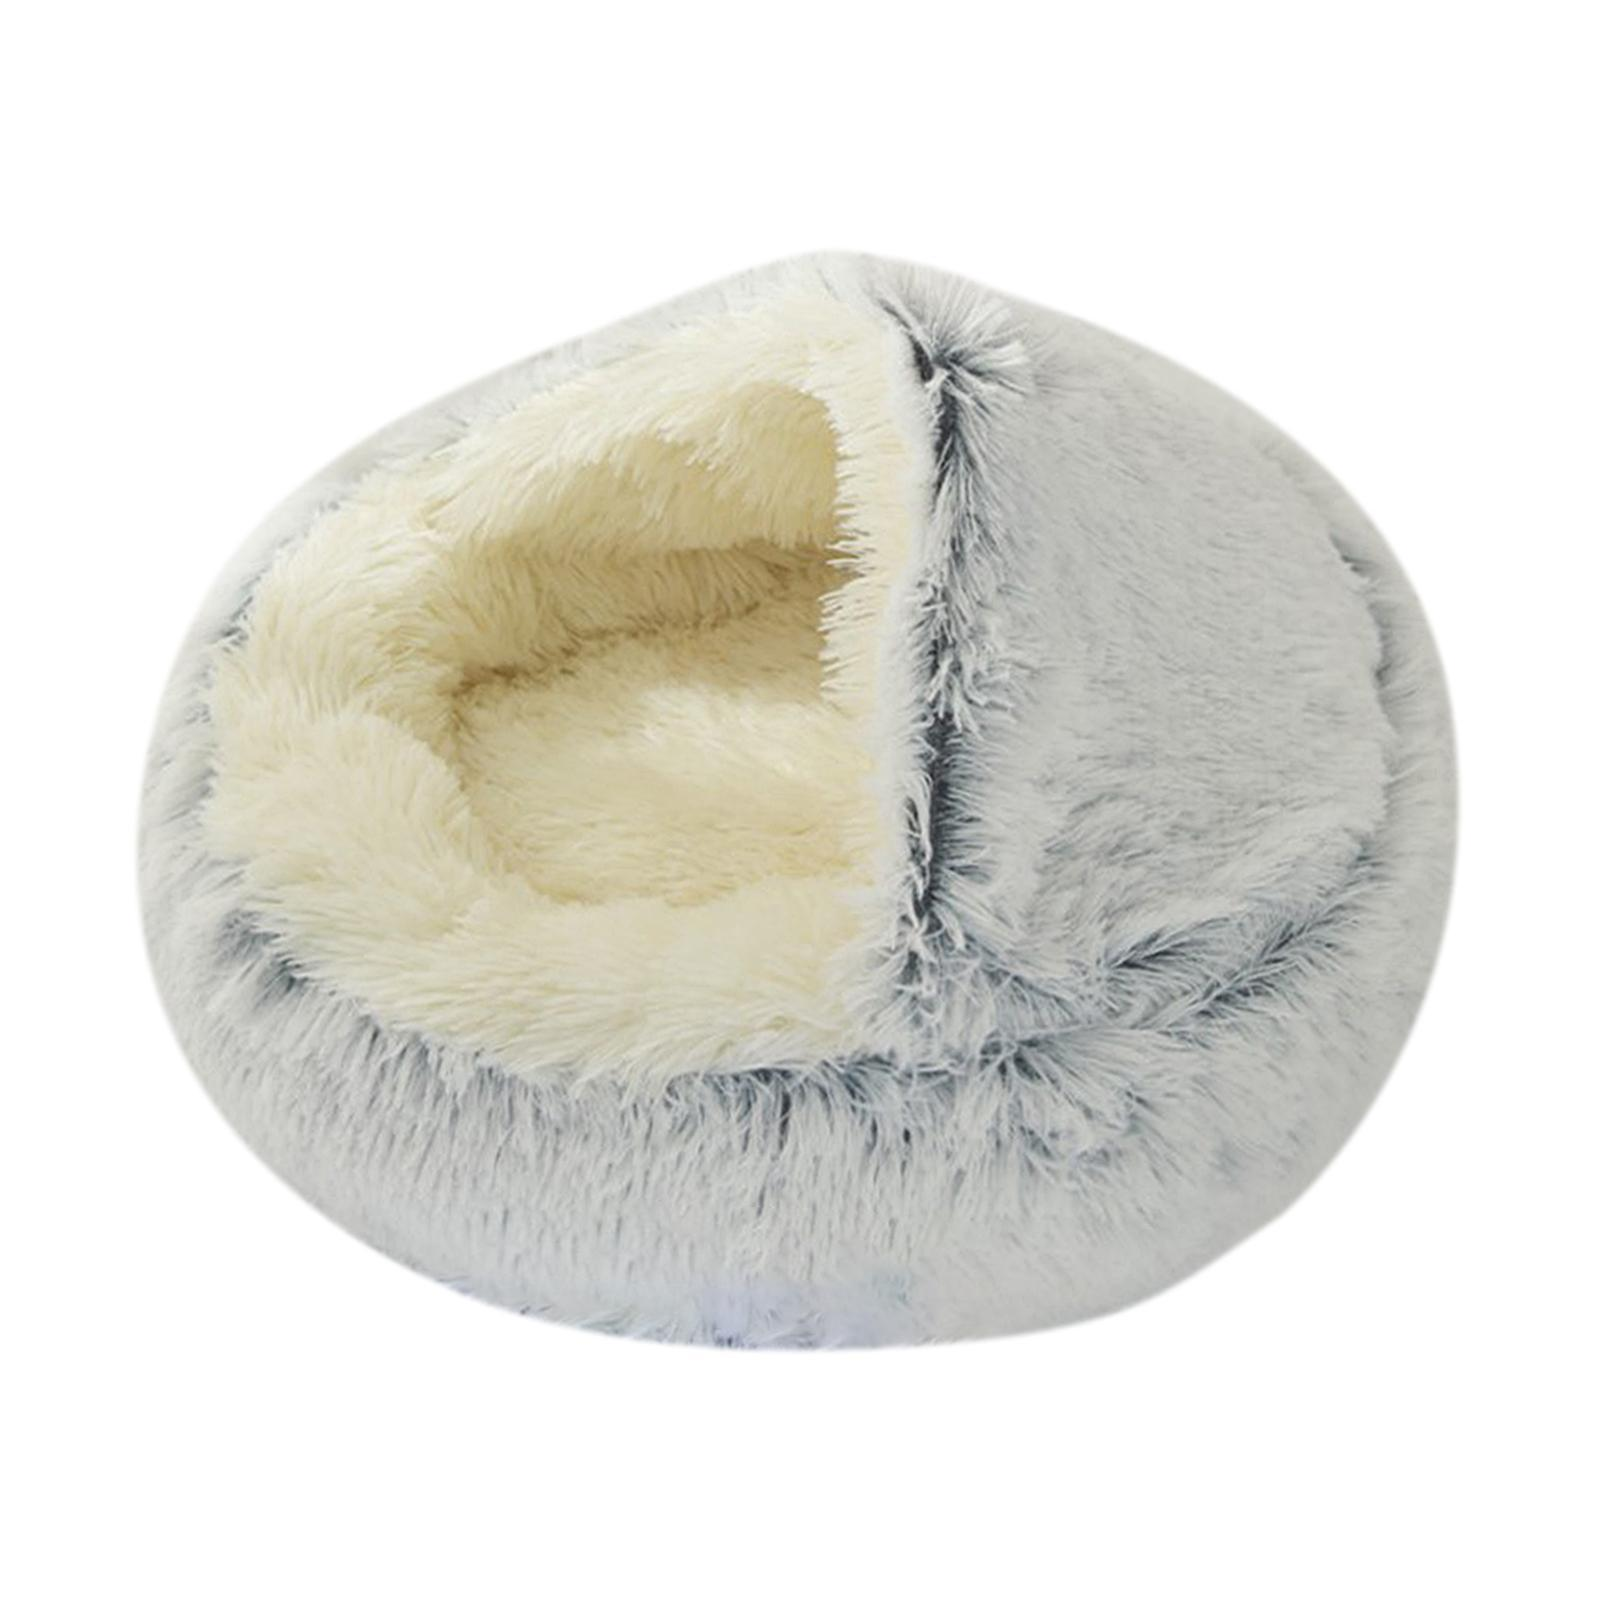 thumbnail 52 - Plush Pet Dog Cat Bed Fluffy Soft Warm Calming Bed Sleeping Kennel Cave Nest